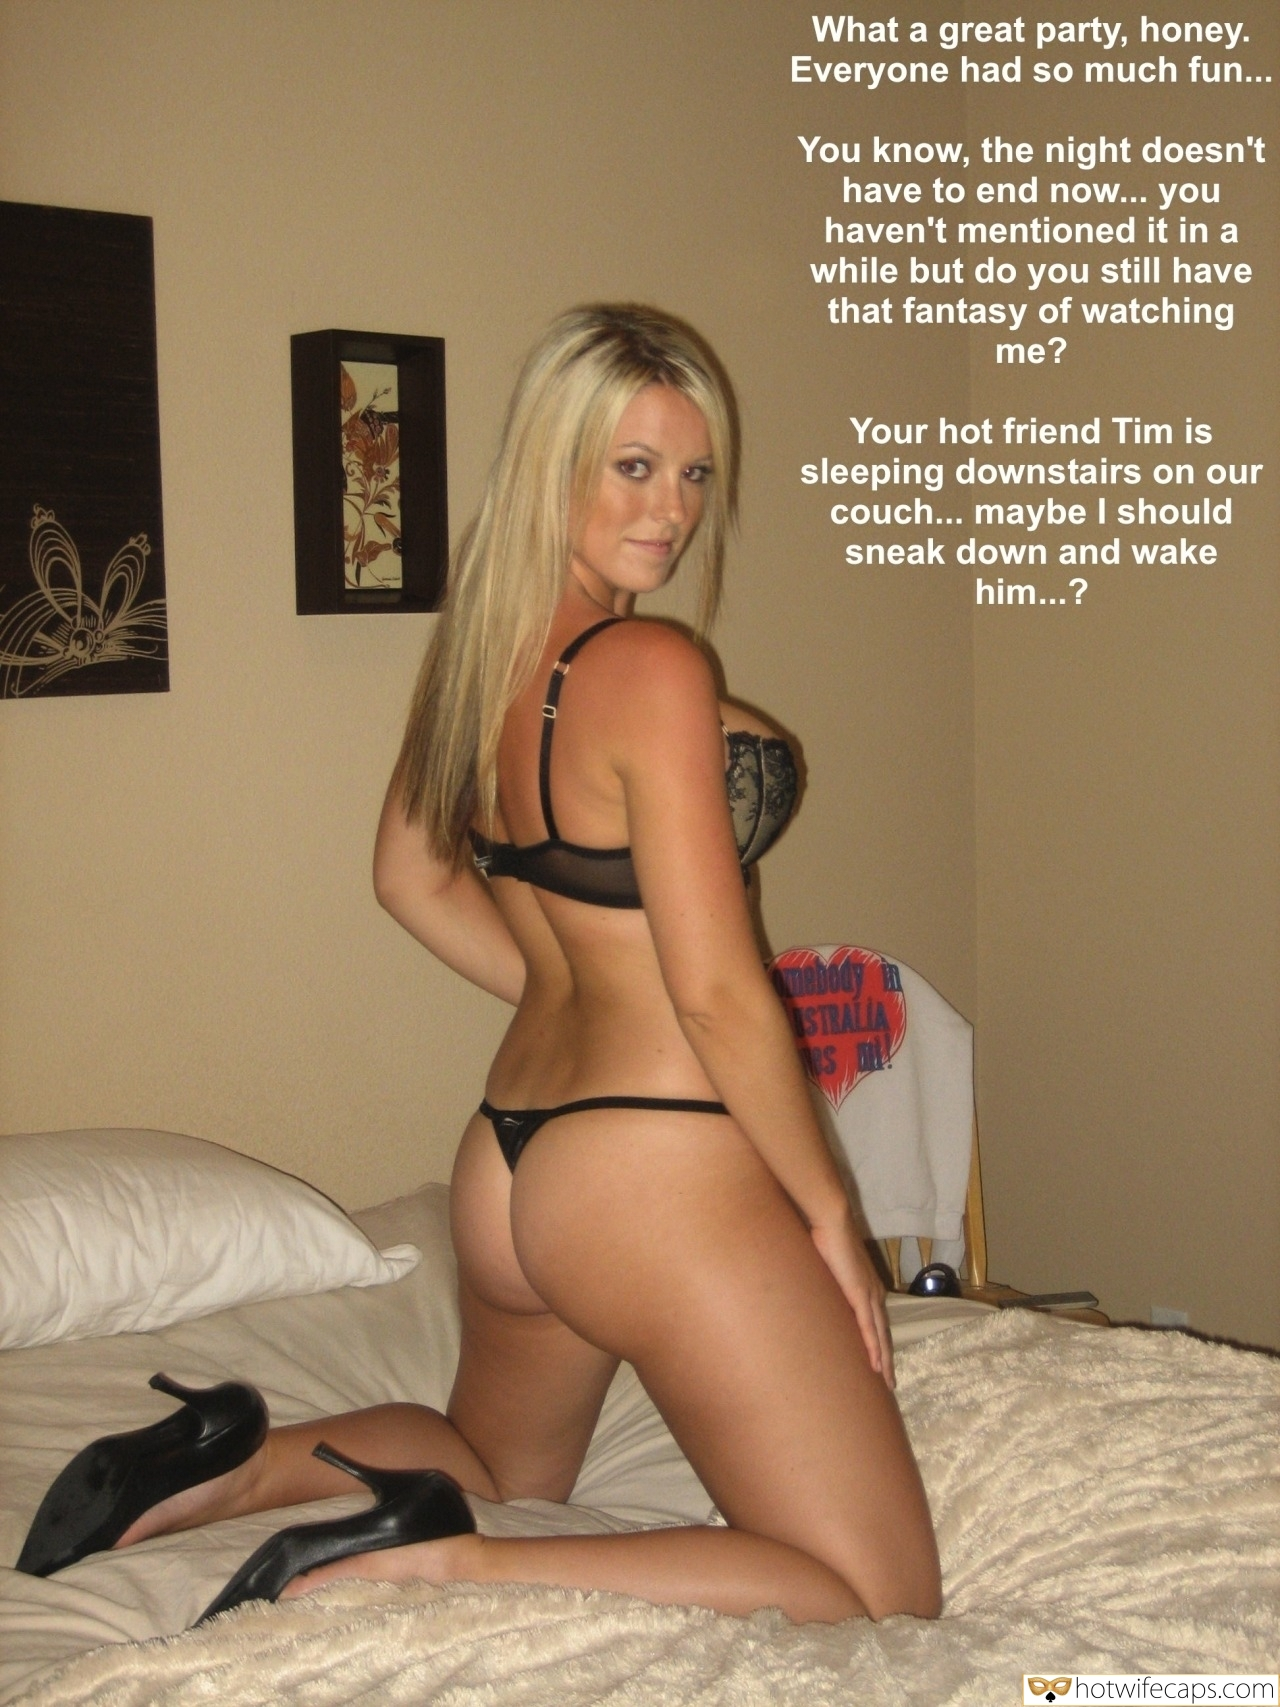 hotwife cuckold friends dirty talk hotwife caption There is Another One Cock In Your House And That Makes Her Naughty